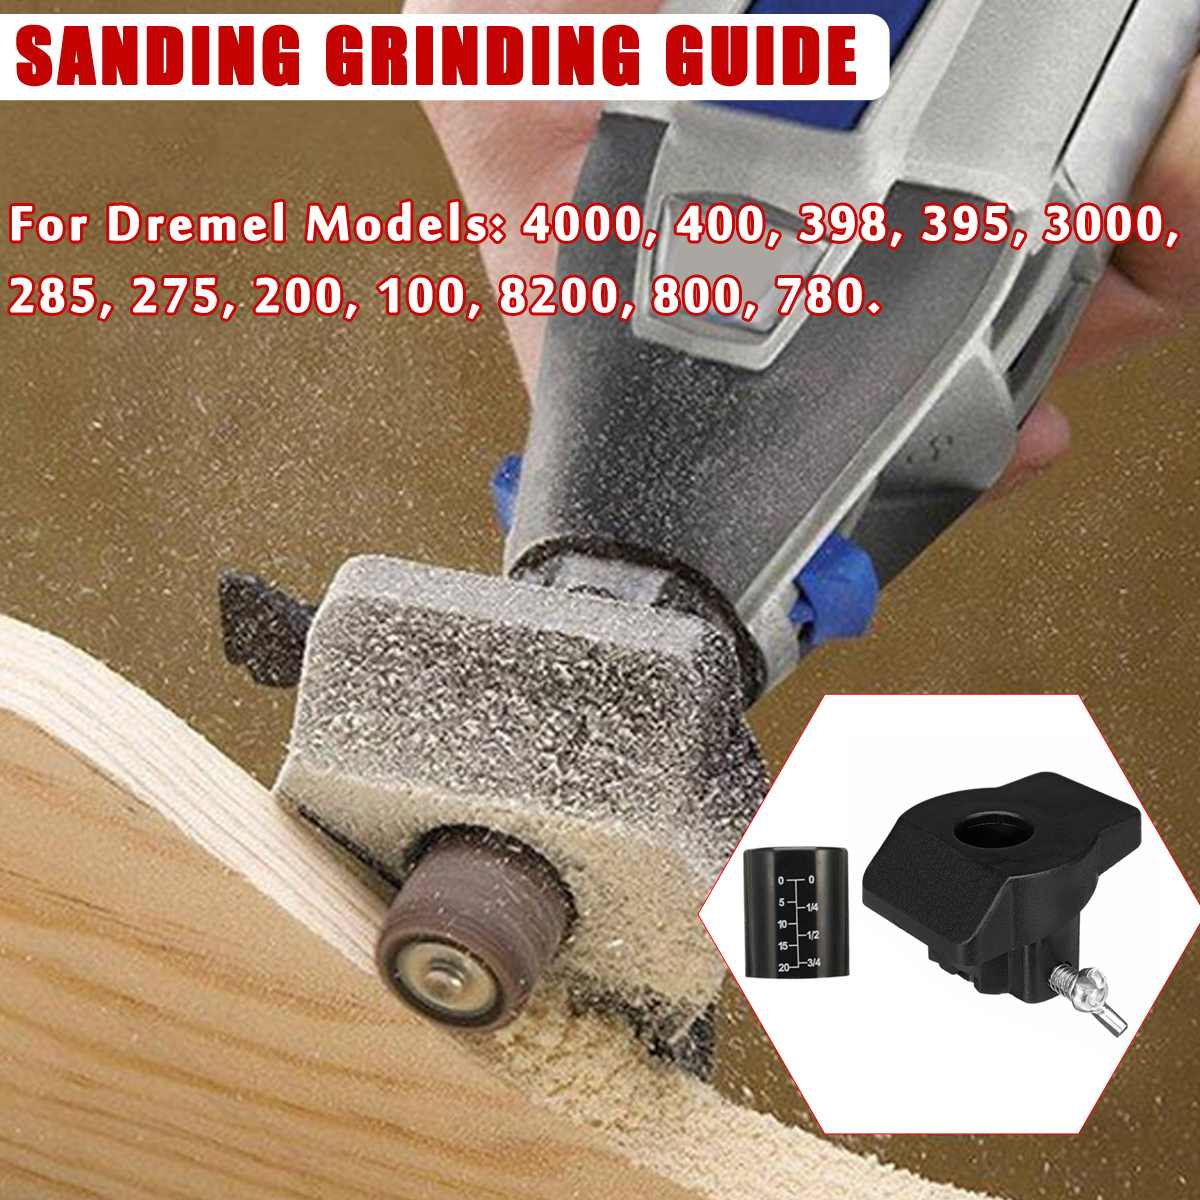 Sanding Grinding Guide Attachment Locator Positioner For Rotary Tool Drill Adapter For Dremel Models 4000 400 398 395 3000 285